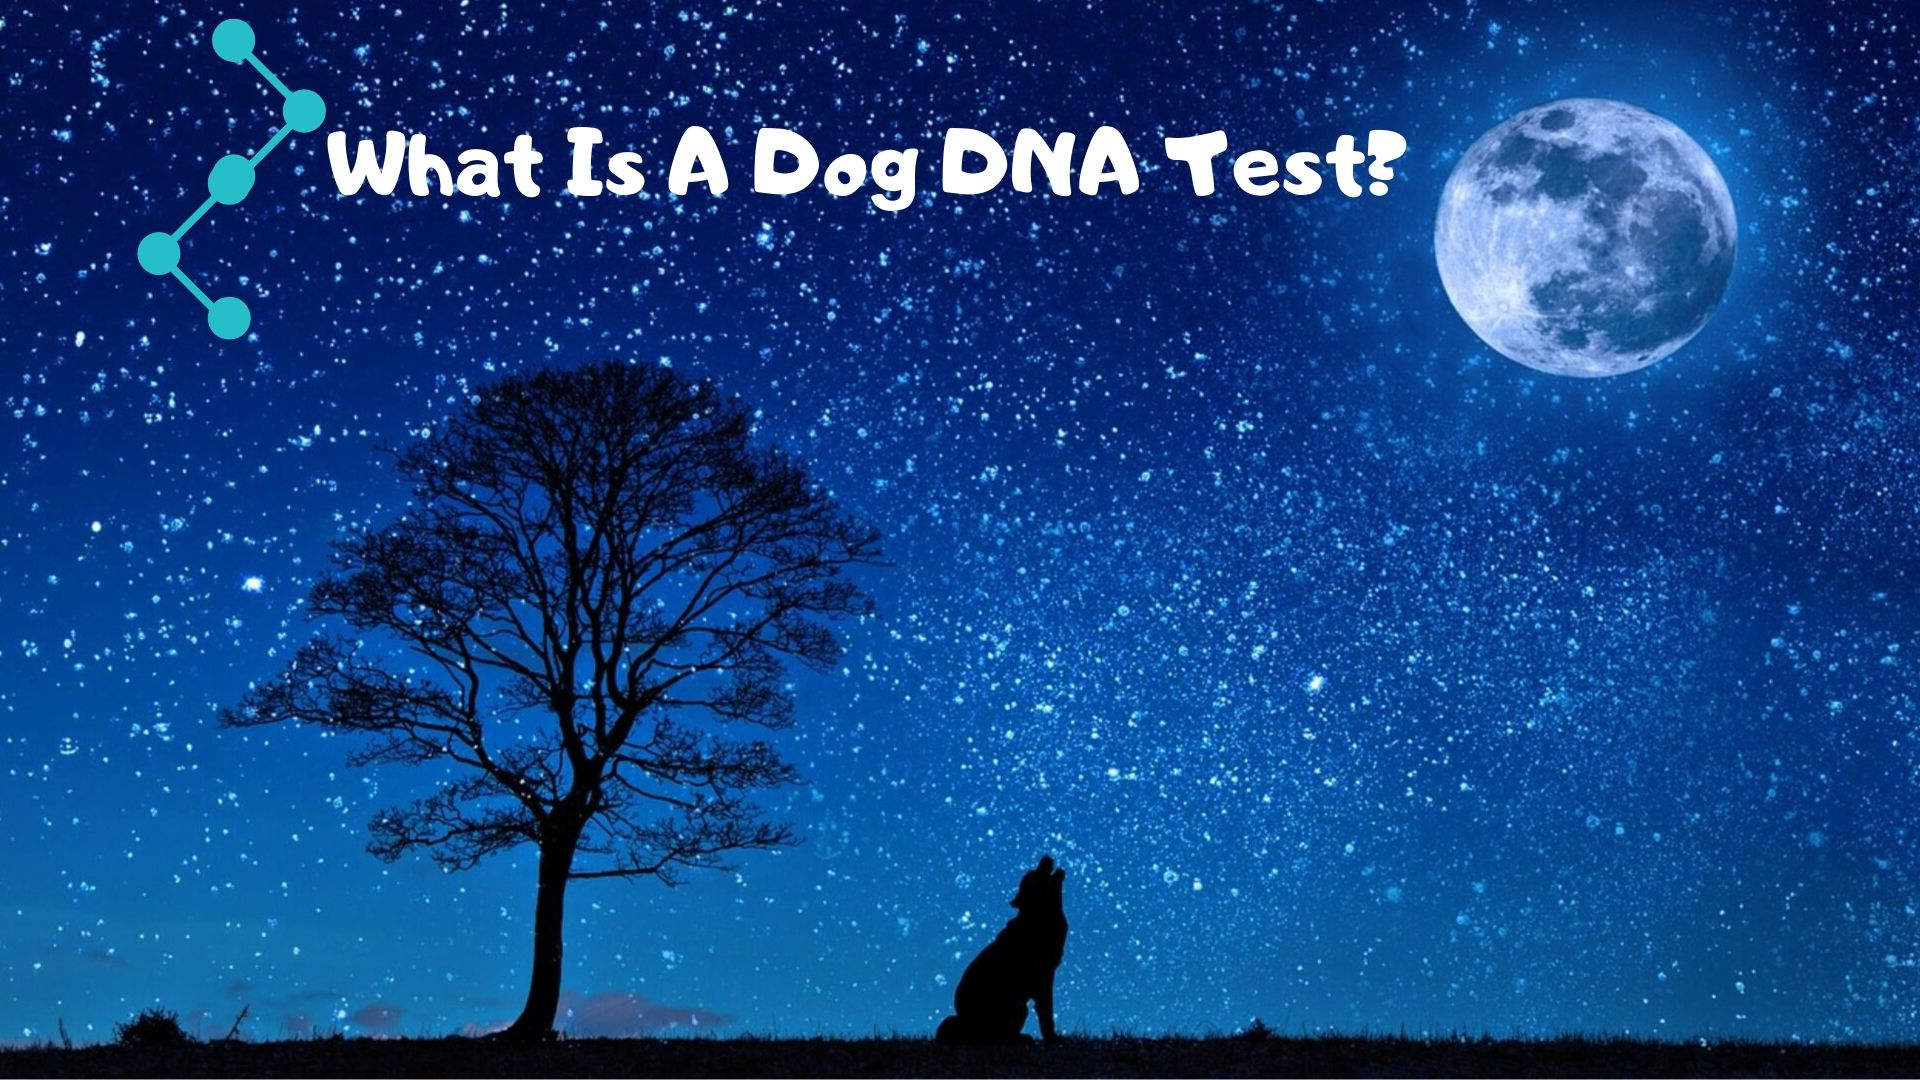 What's a dog DNA test?